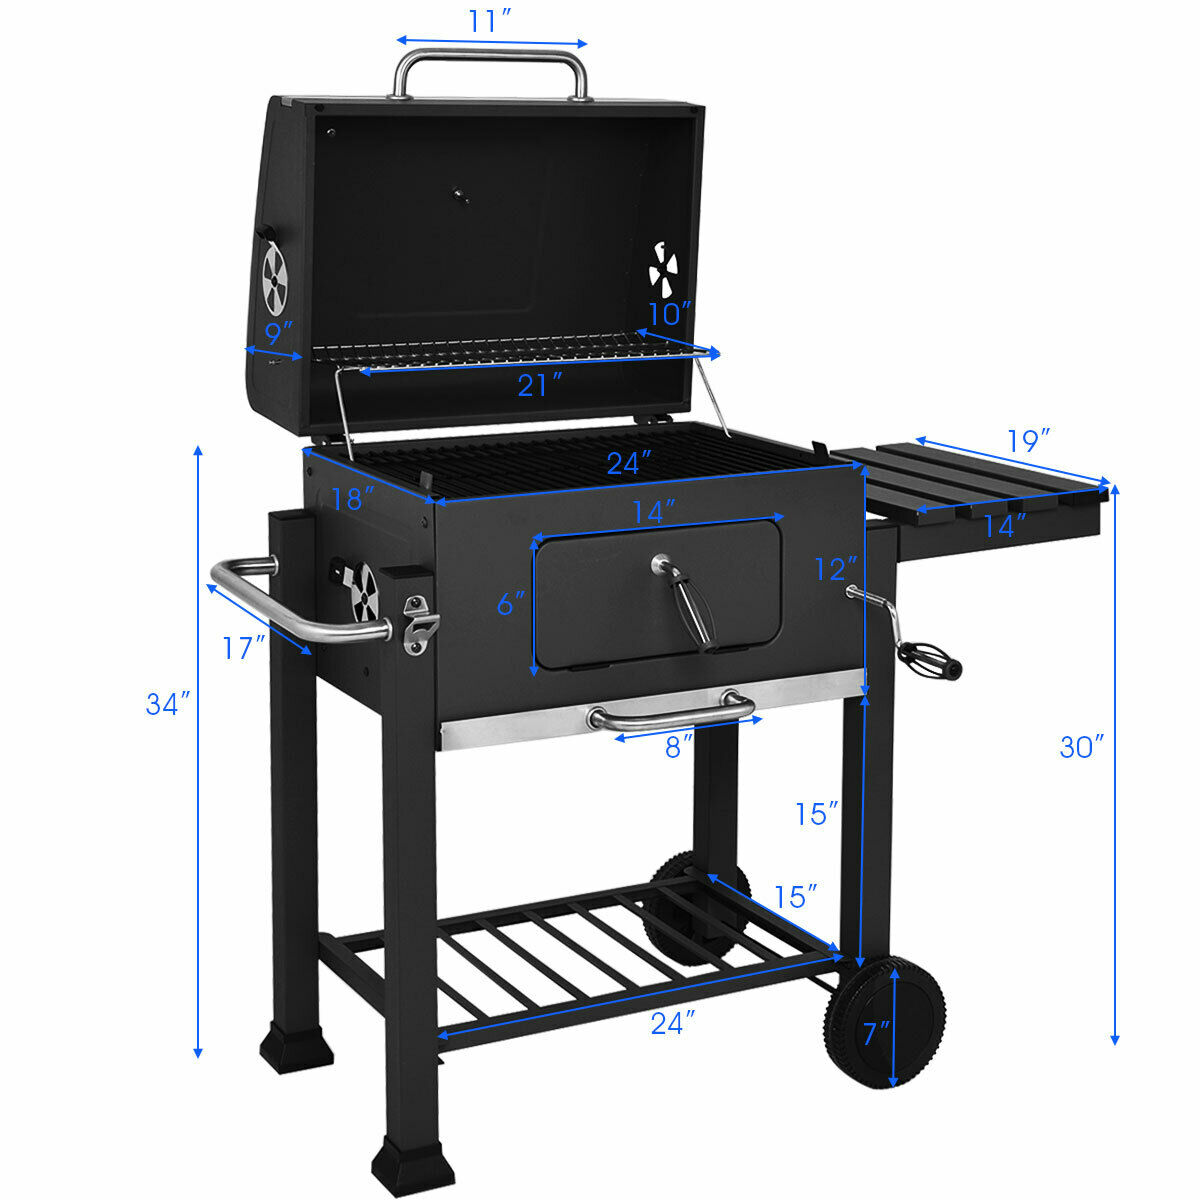 Costway: Costway Charcoal Grill Barbecue BBQ Grill Outdoor ...